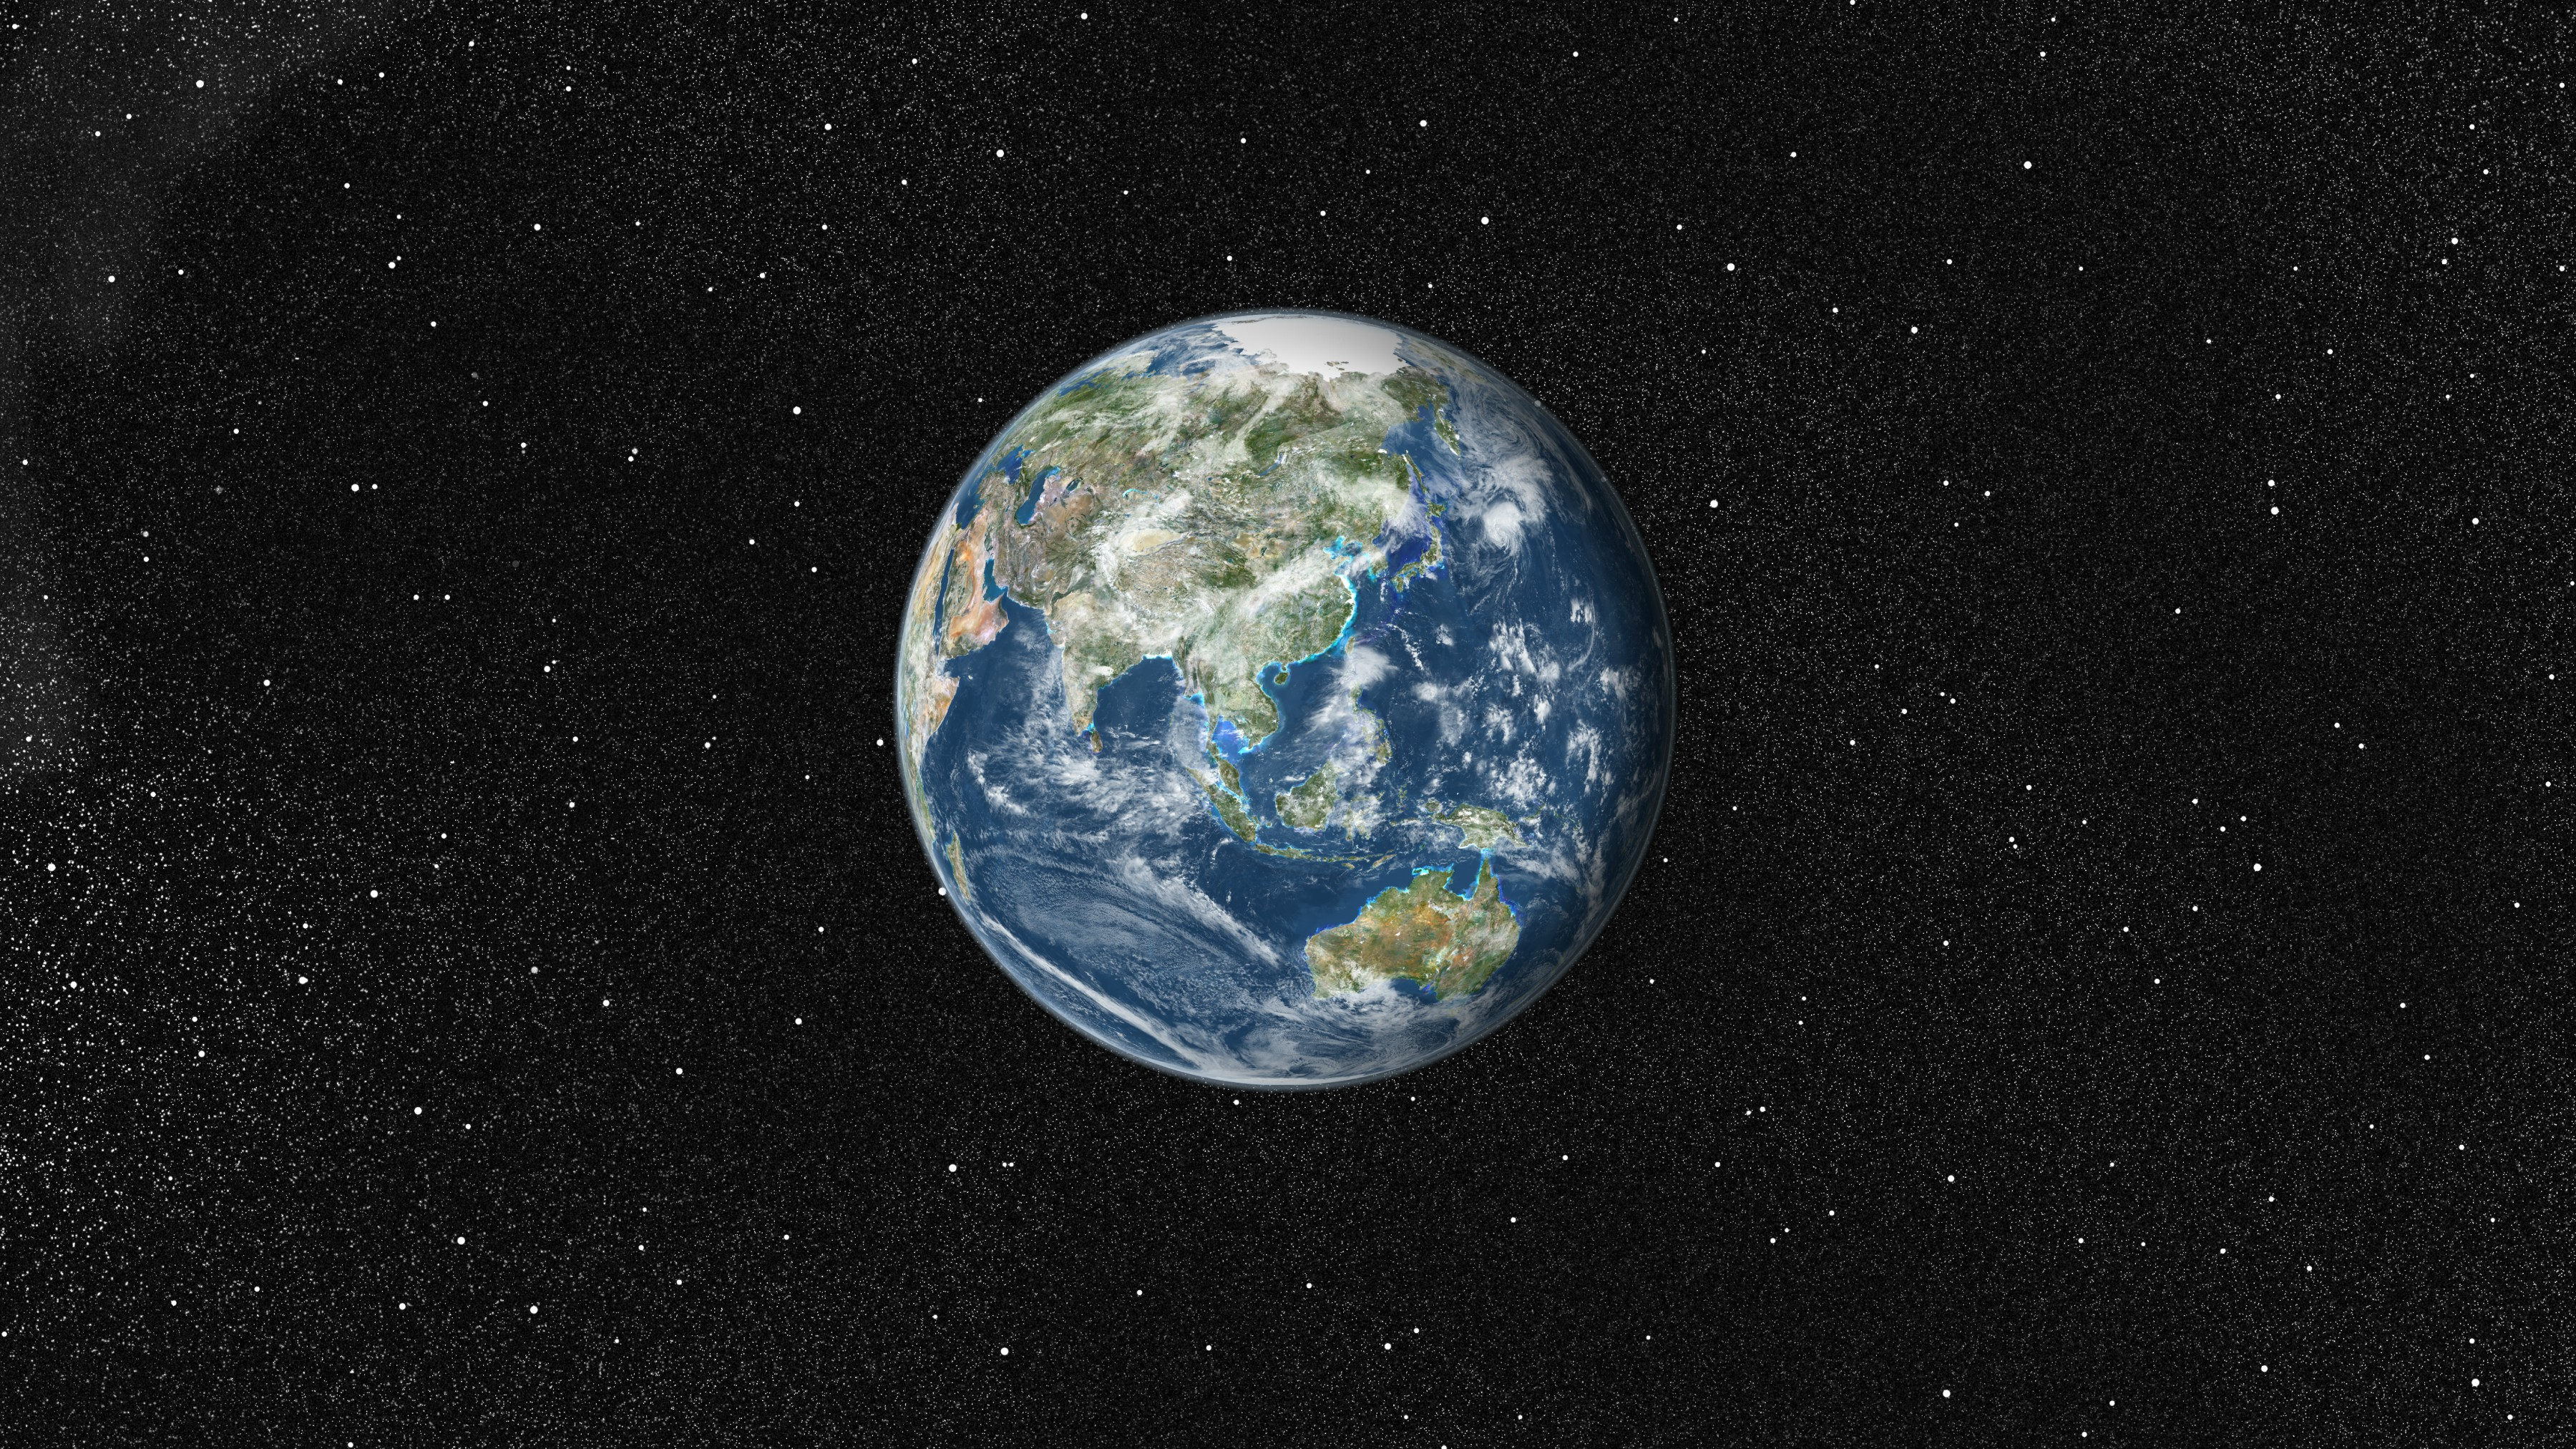 Geno smith is dealing in flat earth nonsense unfortunately si stopboris Gallery